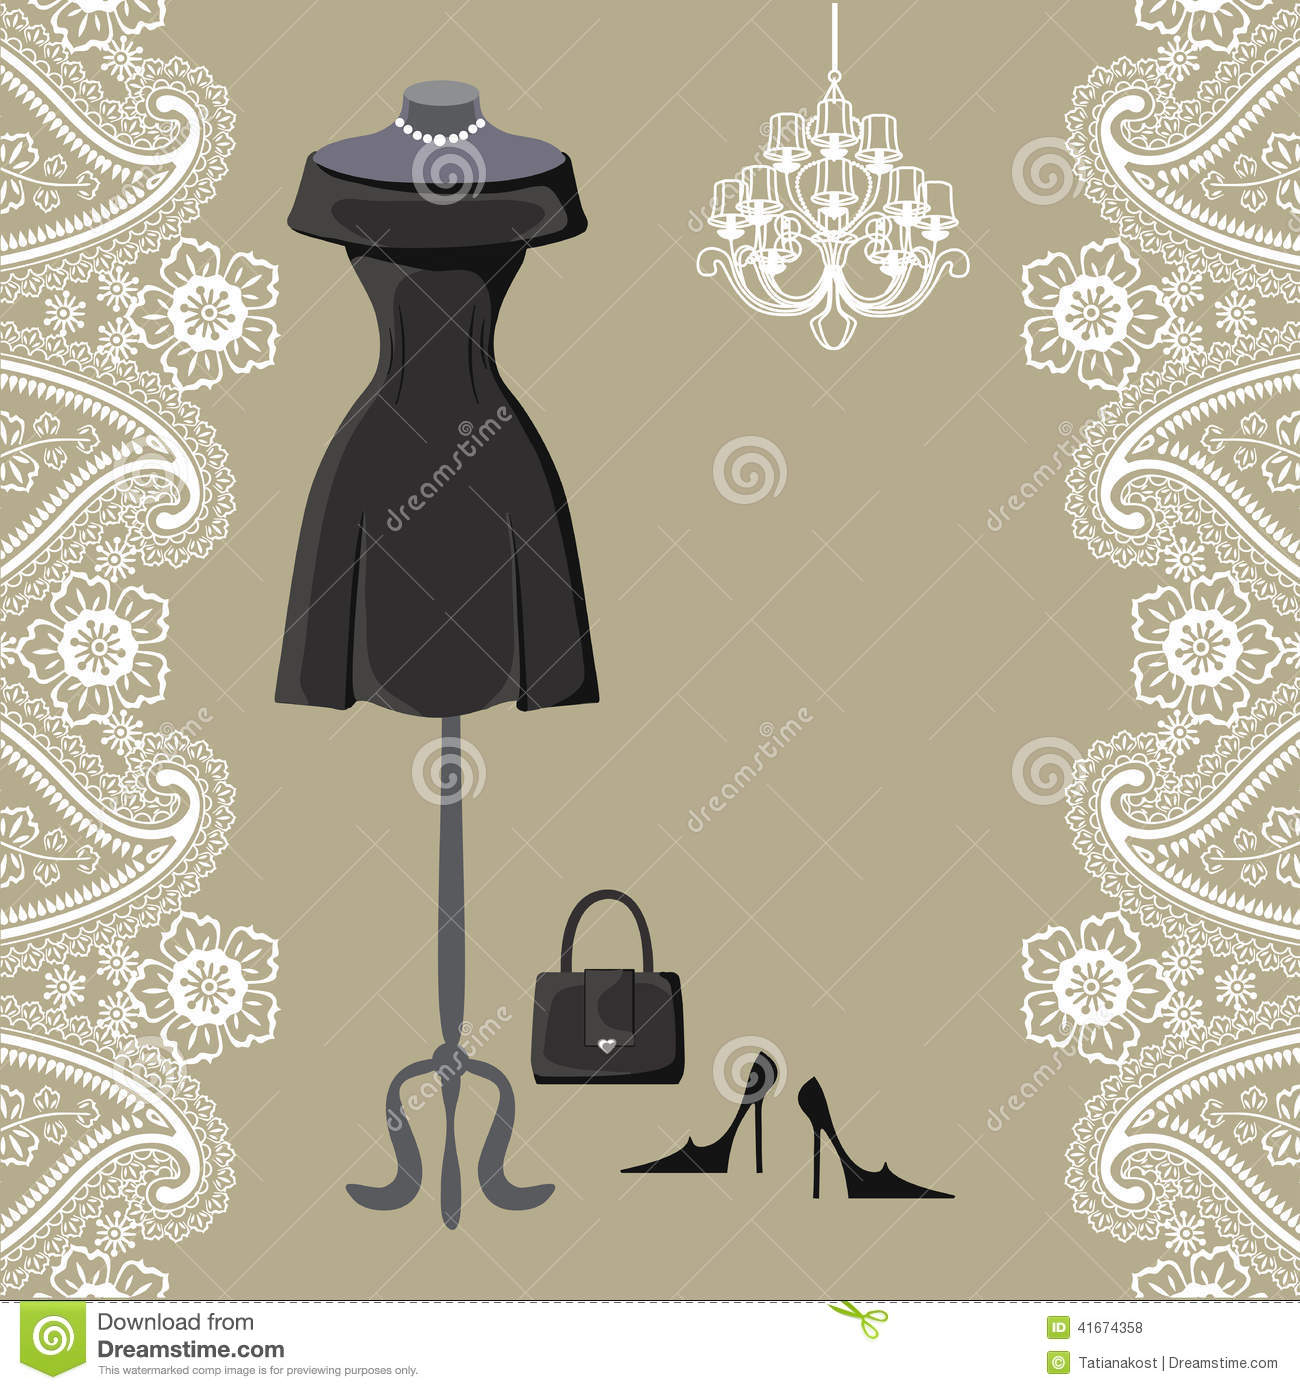 Paisley shower curtain - Little Black Dresses With Chandelier And Paisley Border